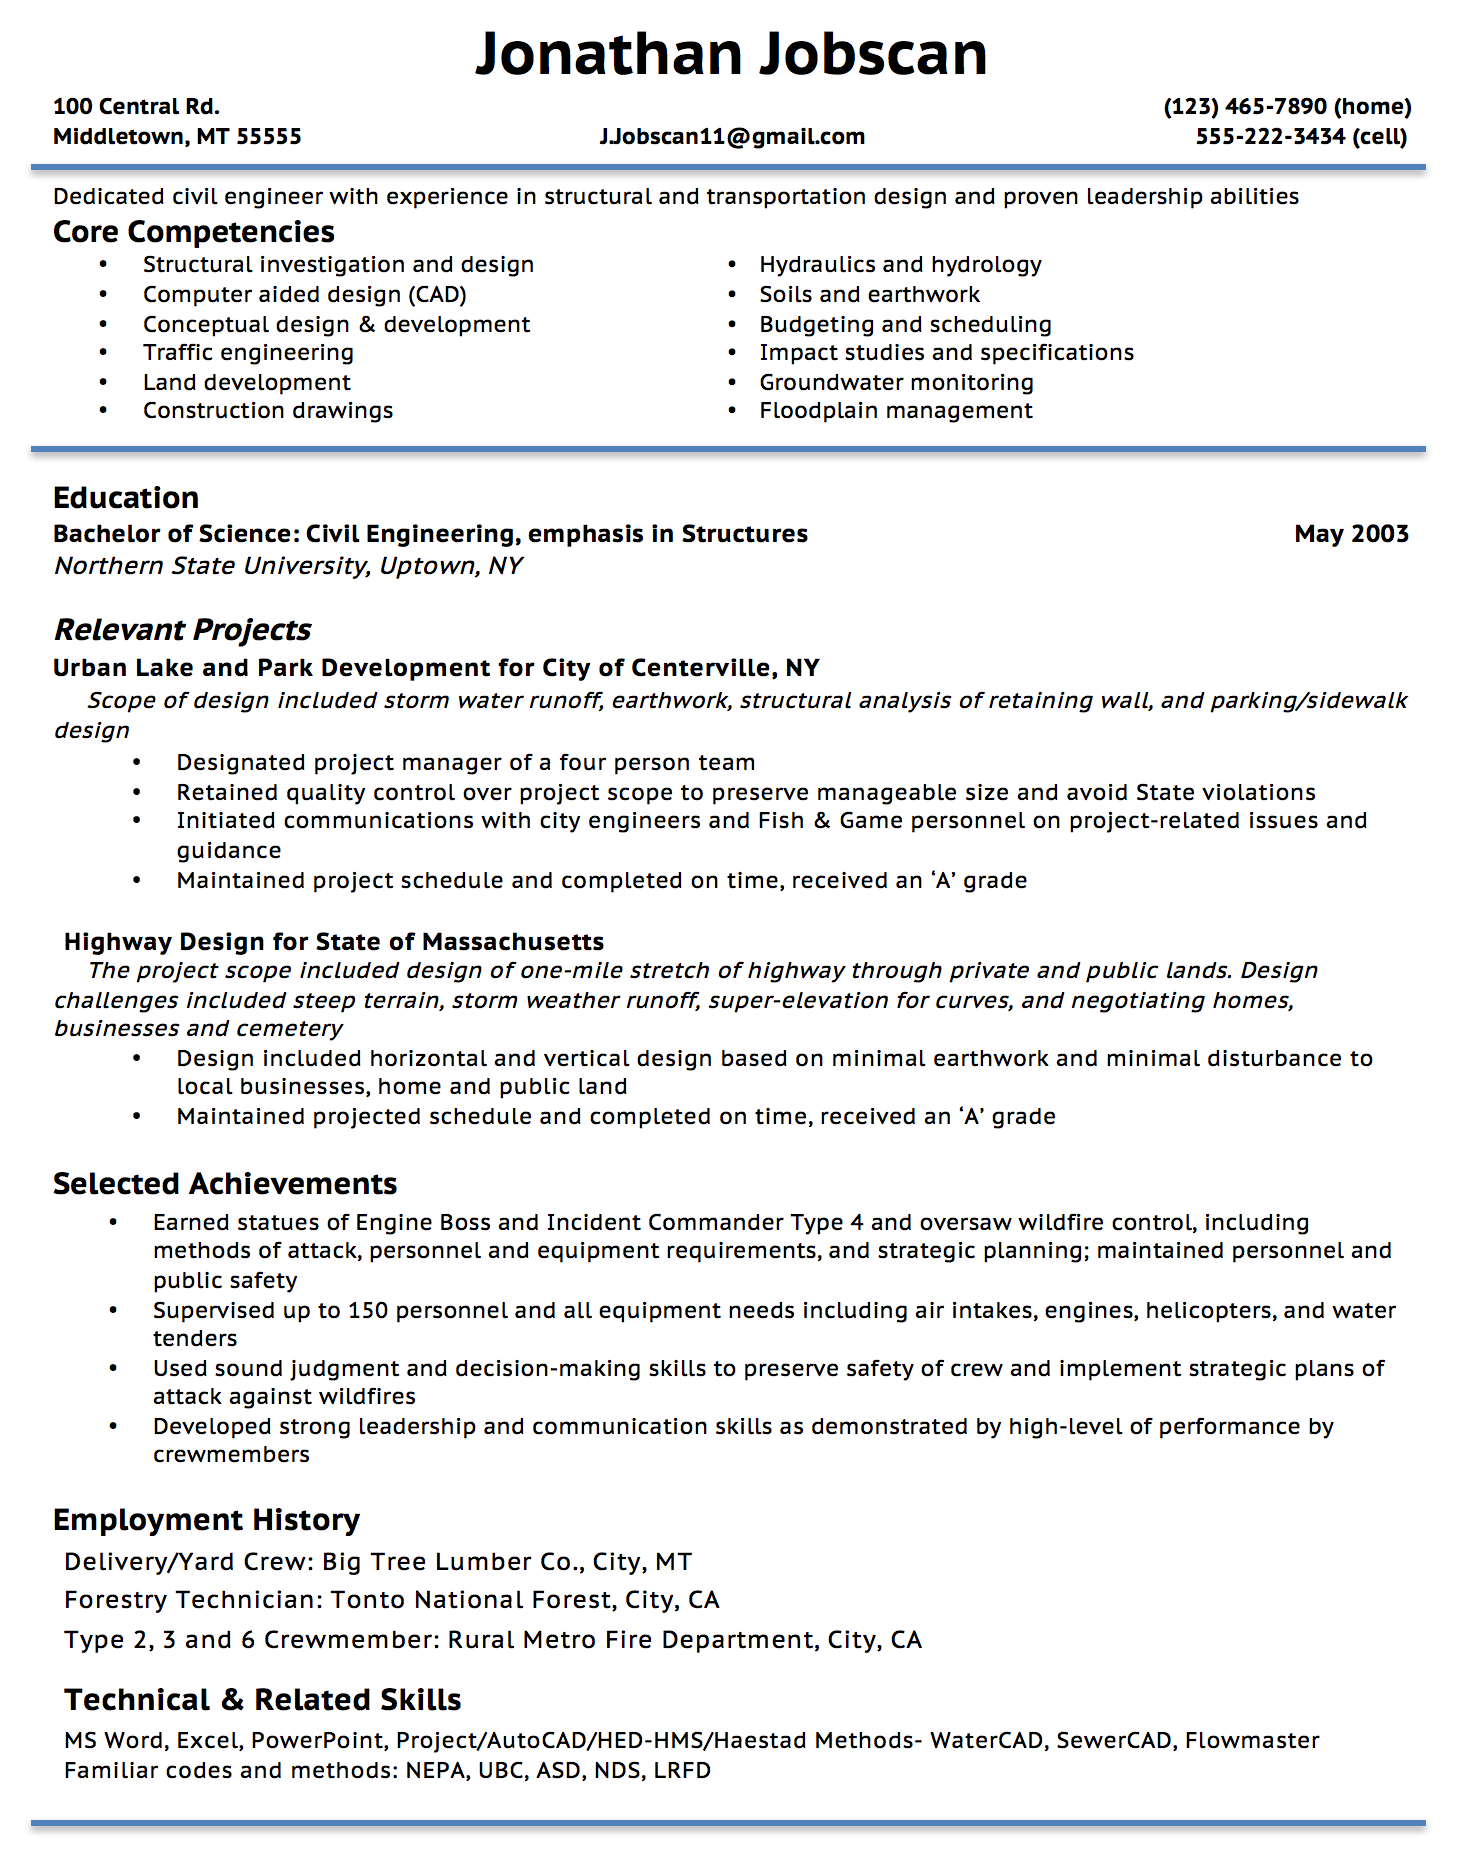 Opposenewapstandardsus  Sweet Resume Writing Guide  Jobscan With Glamorous Example Of A Functional Resume Format With Lovely Babysitter Resume Sample Also Resume Template Free Word In Addition Resume For Office Manager And How Does A Resume Look Like As Well As Elegant Resume Template Additionally Non Profit Resume From Jobscanco With Opposenewapstandardsus  Glamorous Resume Writing Guide  Jobscan With Lovely Example Of A Functional Resume Format And Sweet Babysitter Resume Sample Also Resume Template Free Word In Addition Resume For Office Manager From Jobscanco